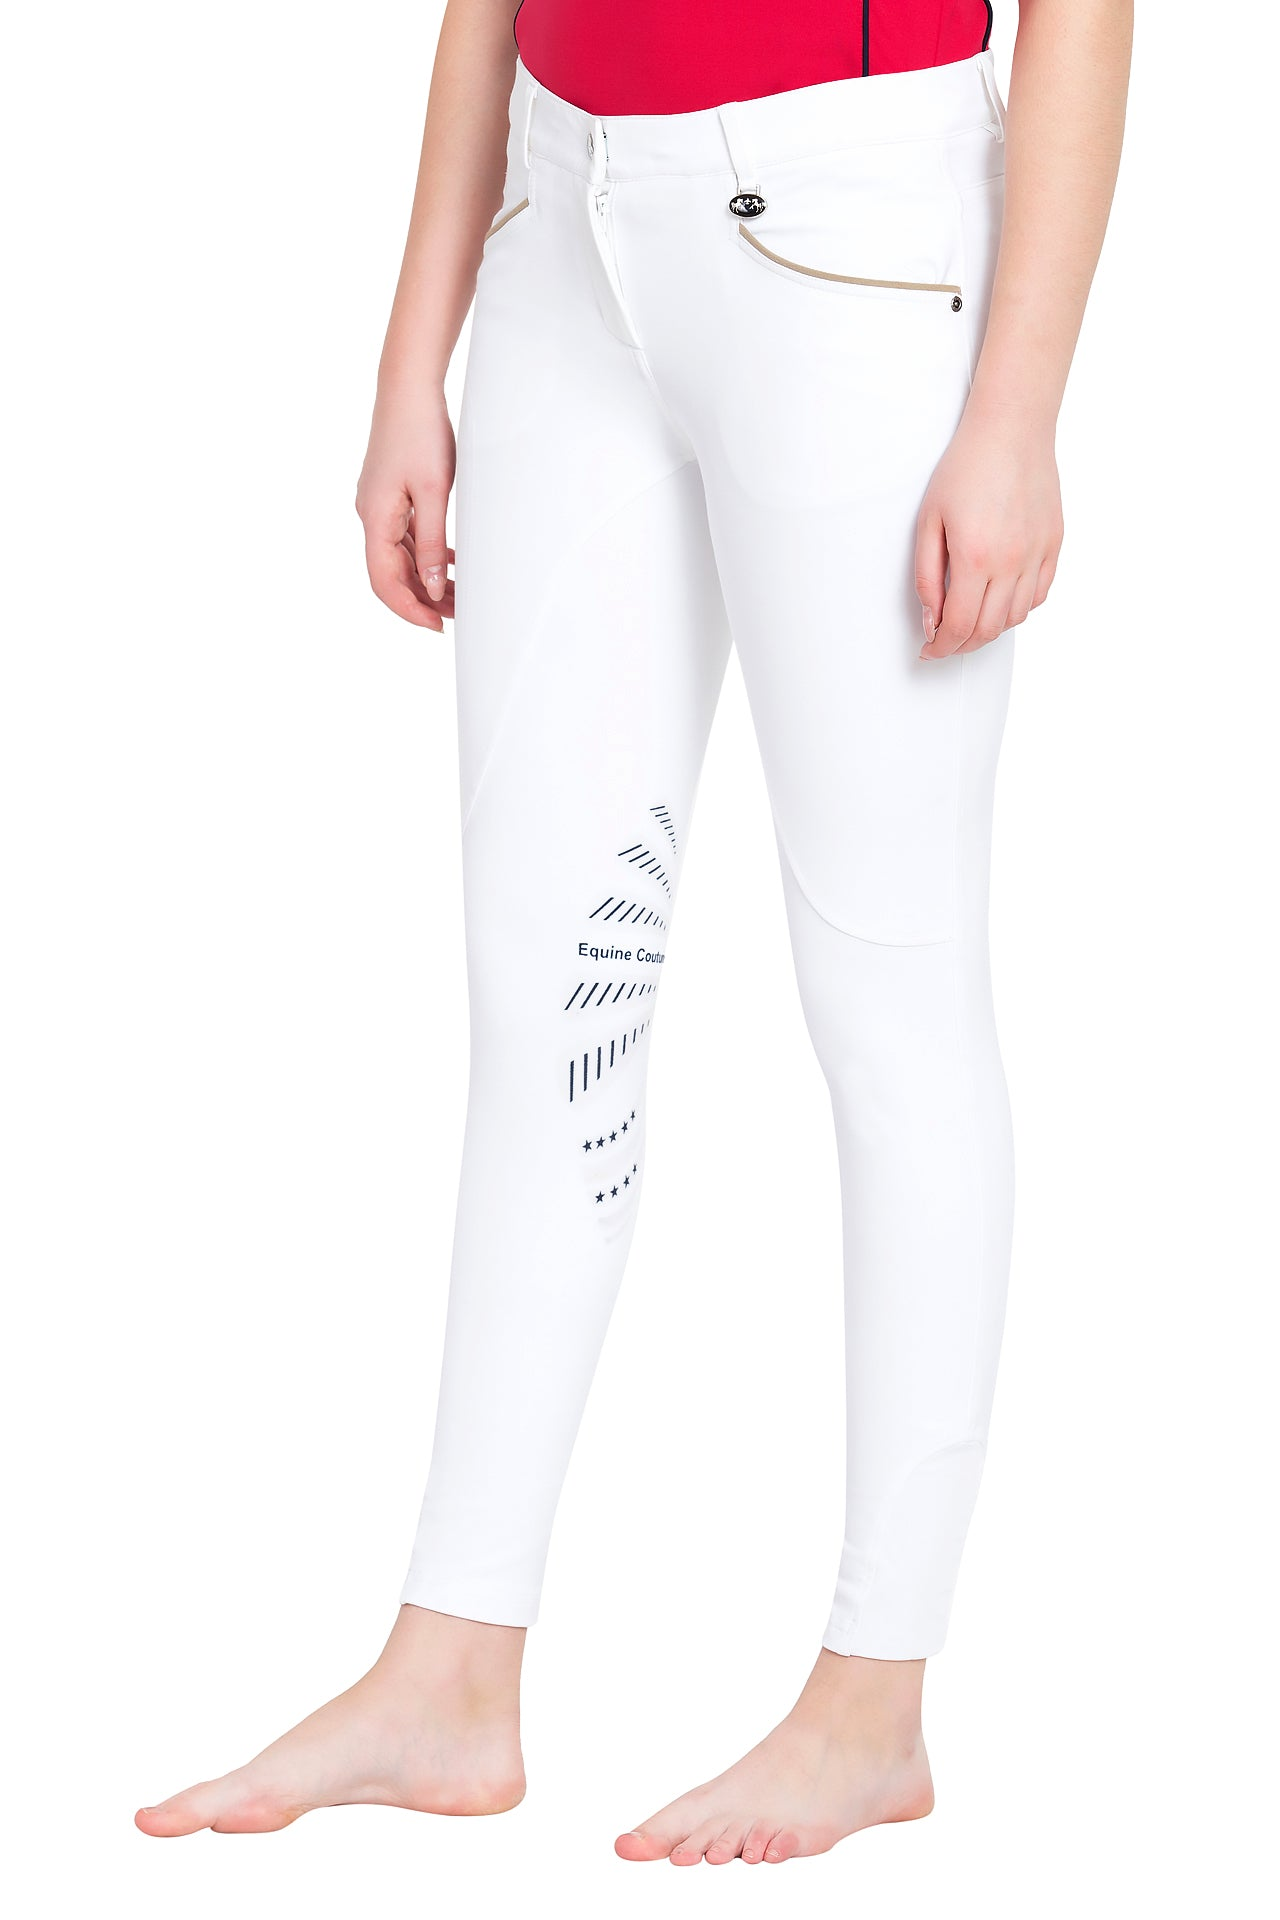 Ladies Lille Knee Patch Breeches - Equine Couture - Breeches.com